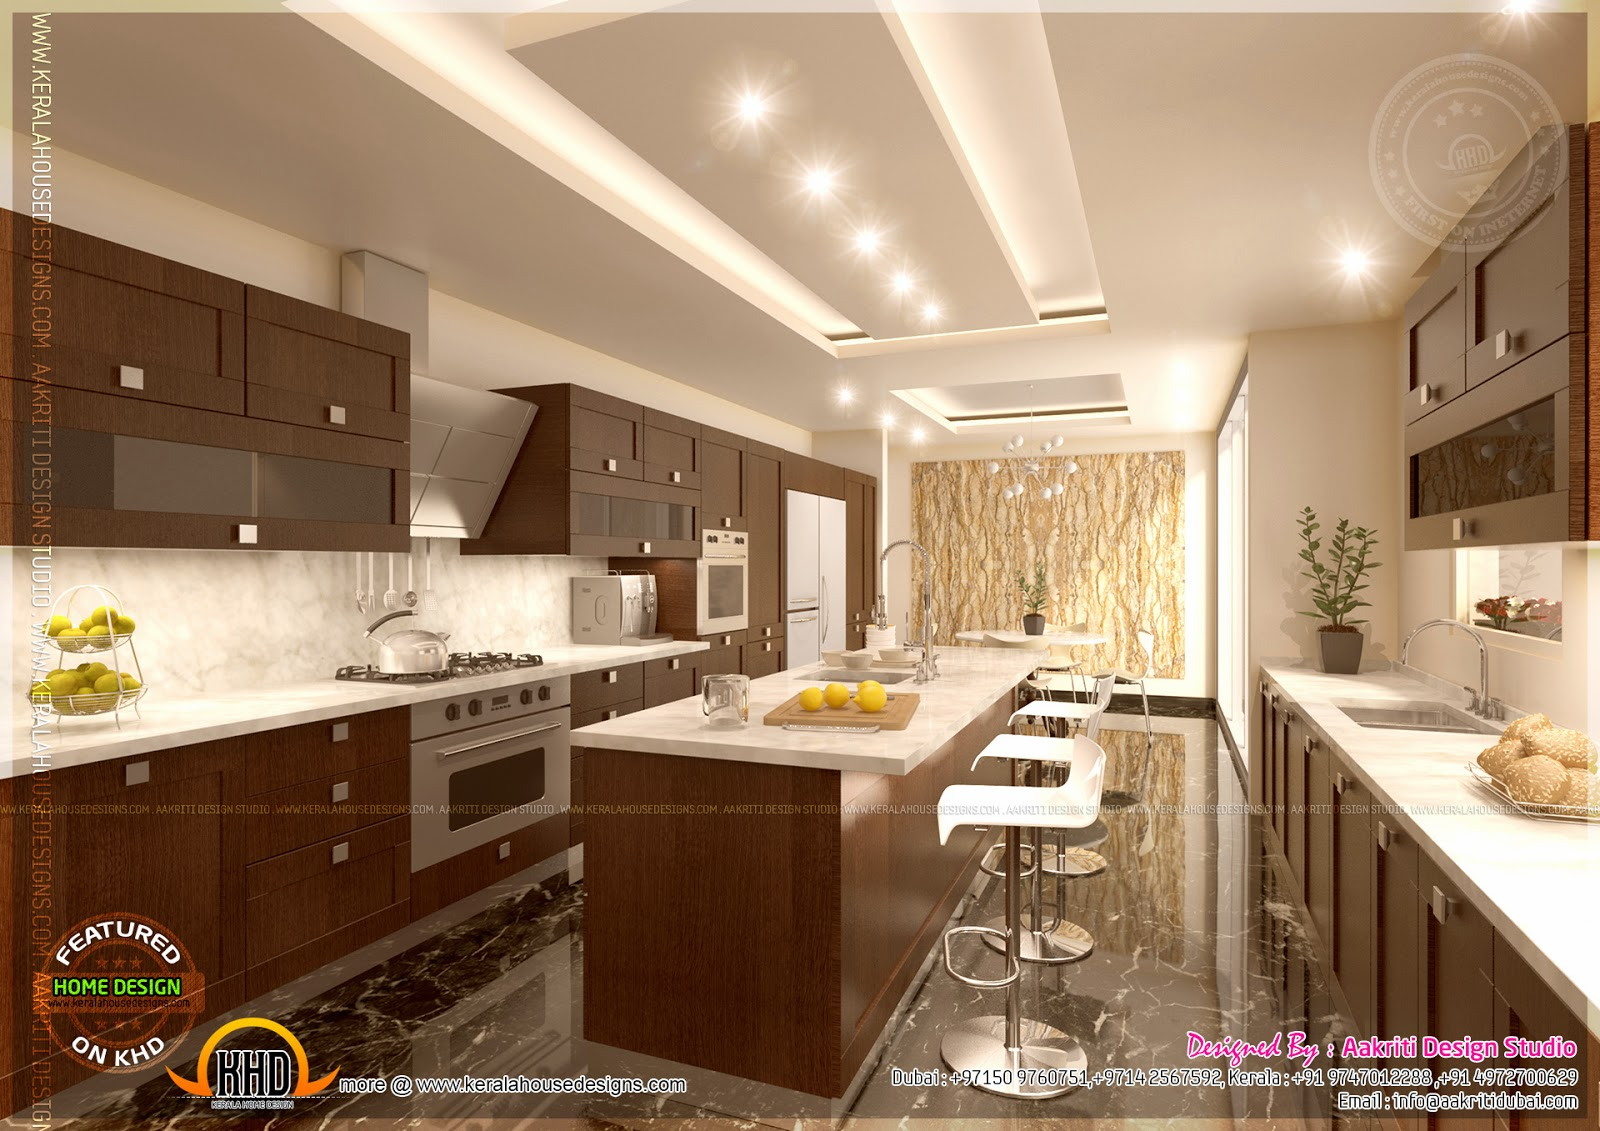 Kitchen designs by aakriti design studio kerala home for Different kitchen design ideas